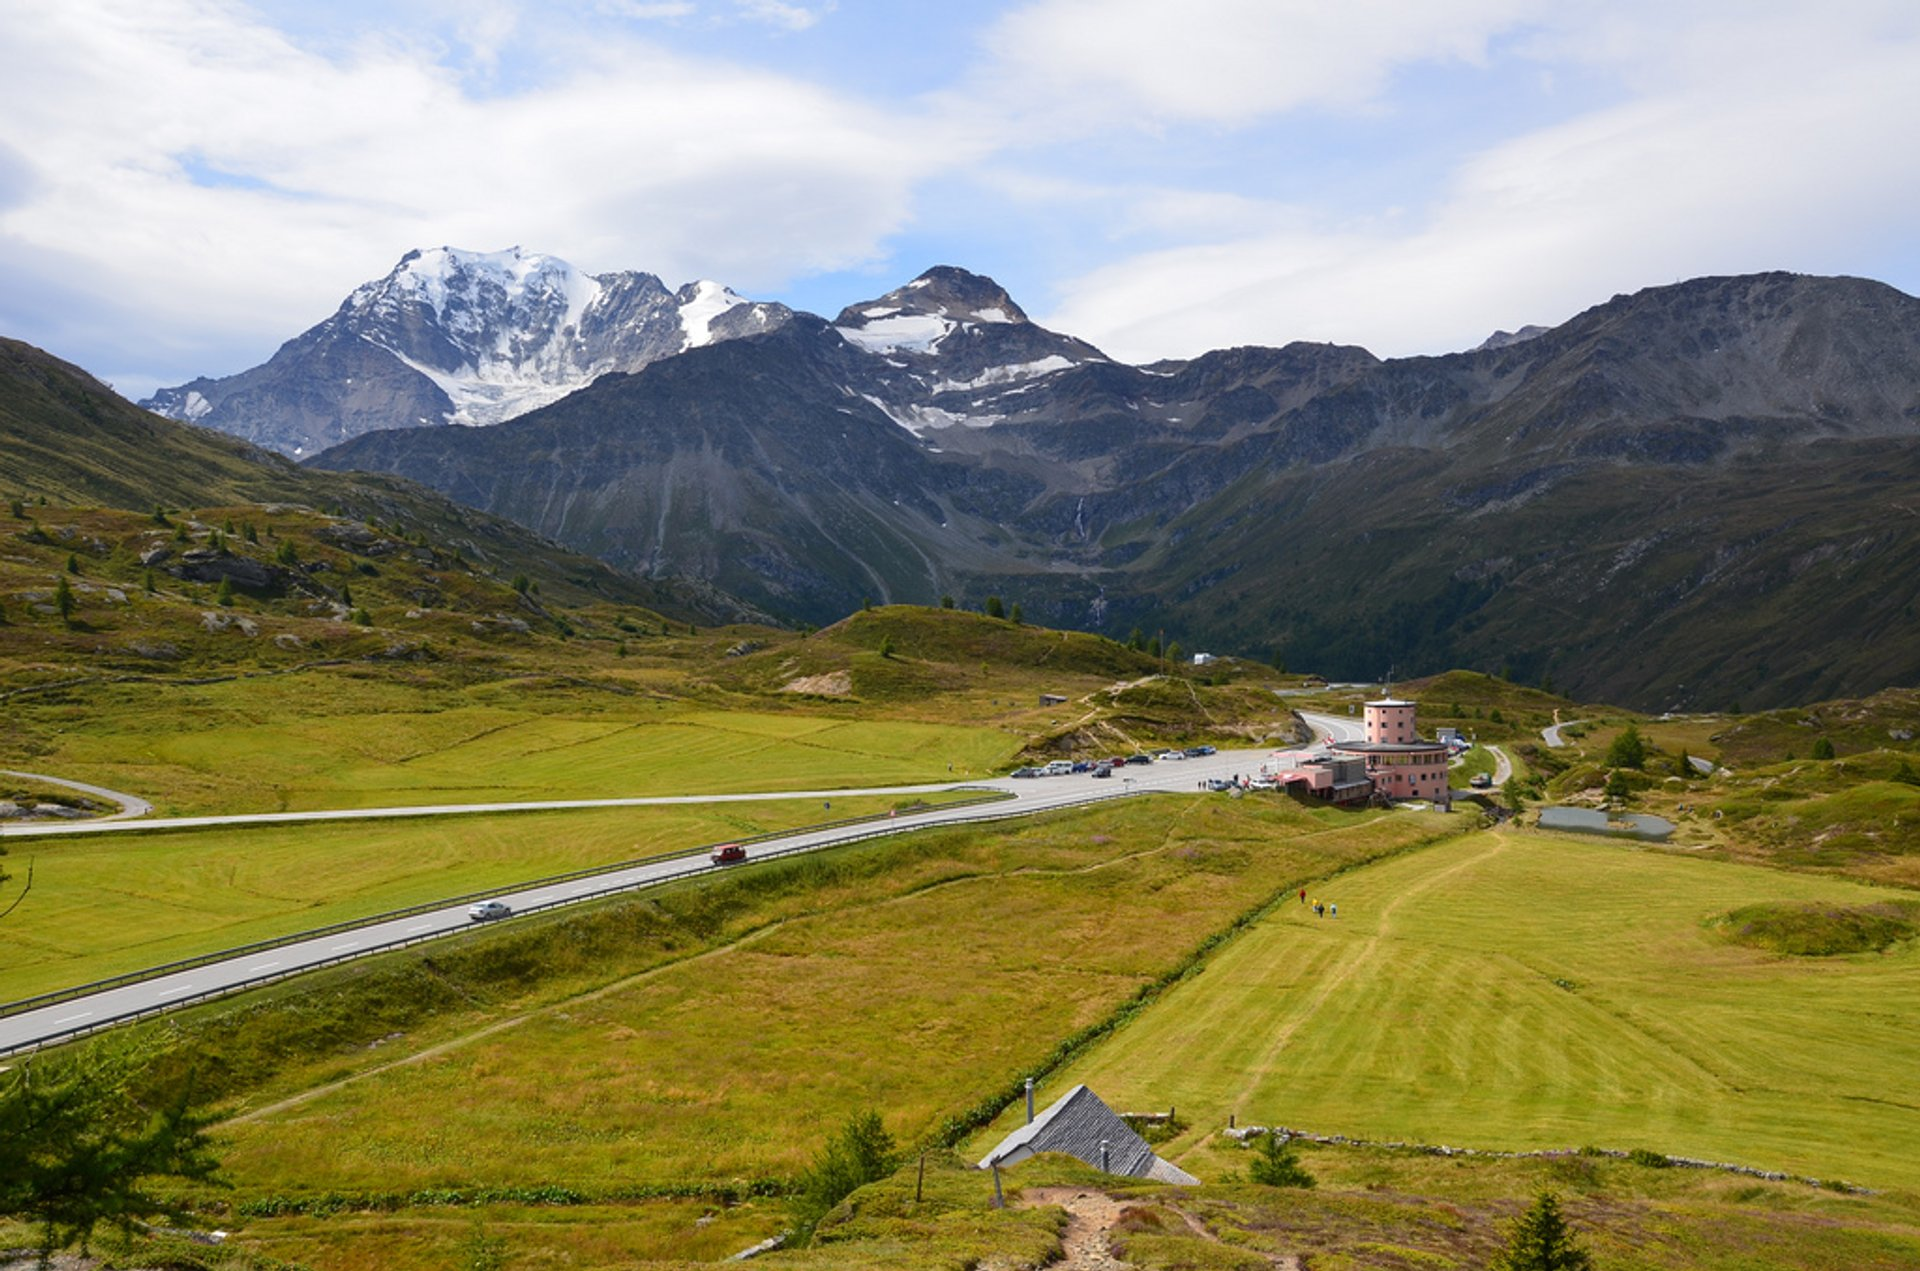 Simplon Pass (Passo del Sempione) in Switzerland - Best Season 2020